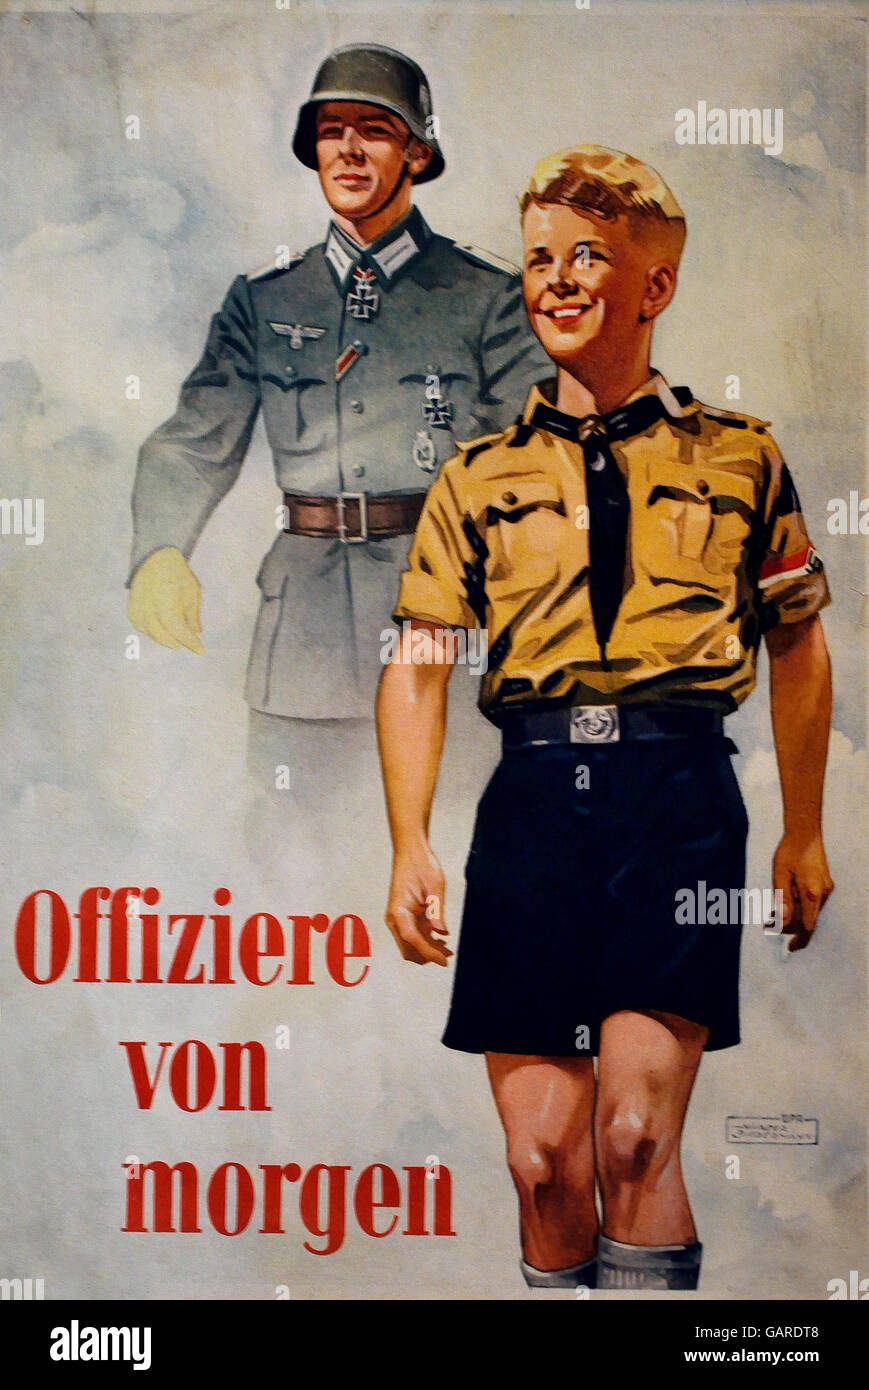 Offiziere von Morgen  - Officers of Tomorrow  Nazi Germany ( Advertising poster for the Wehrmacht ) - Stock Image